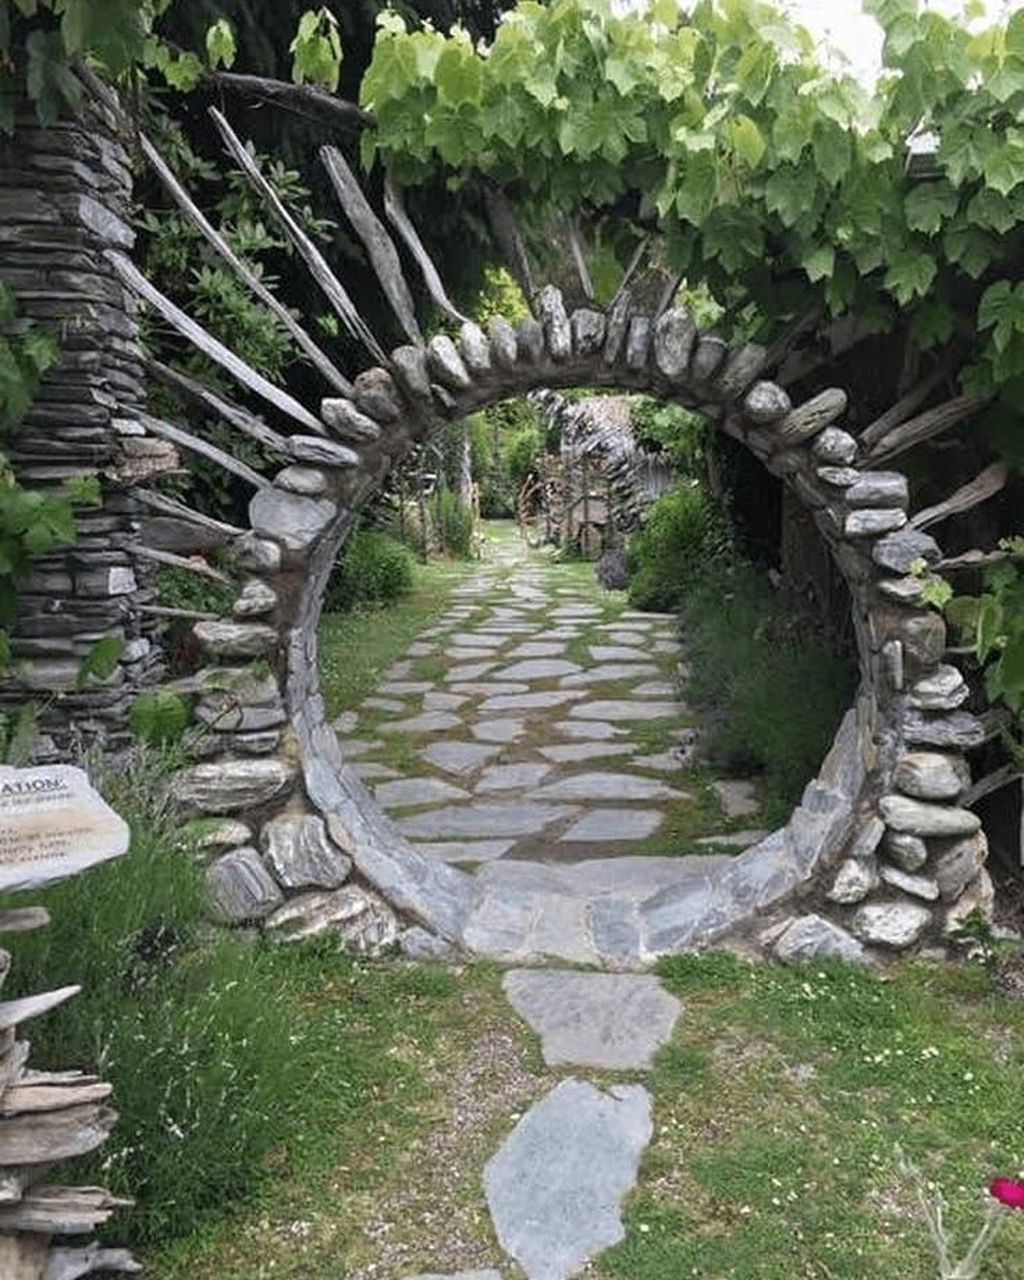 39 Awesome Moon Gate Garden Design Ideas With Images Hobbit